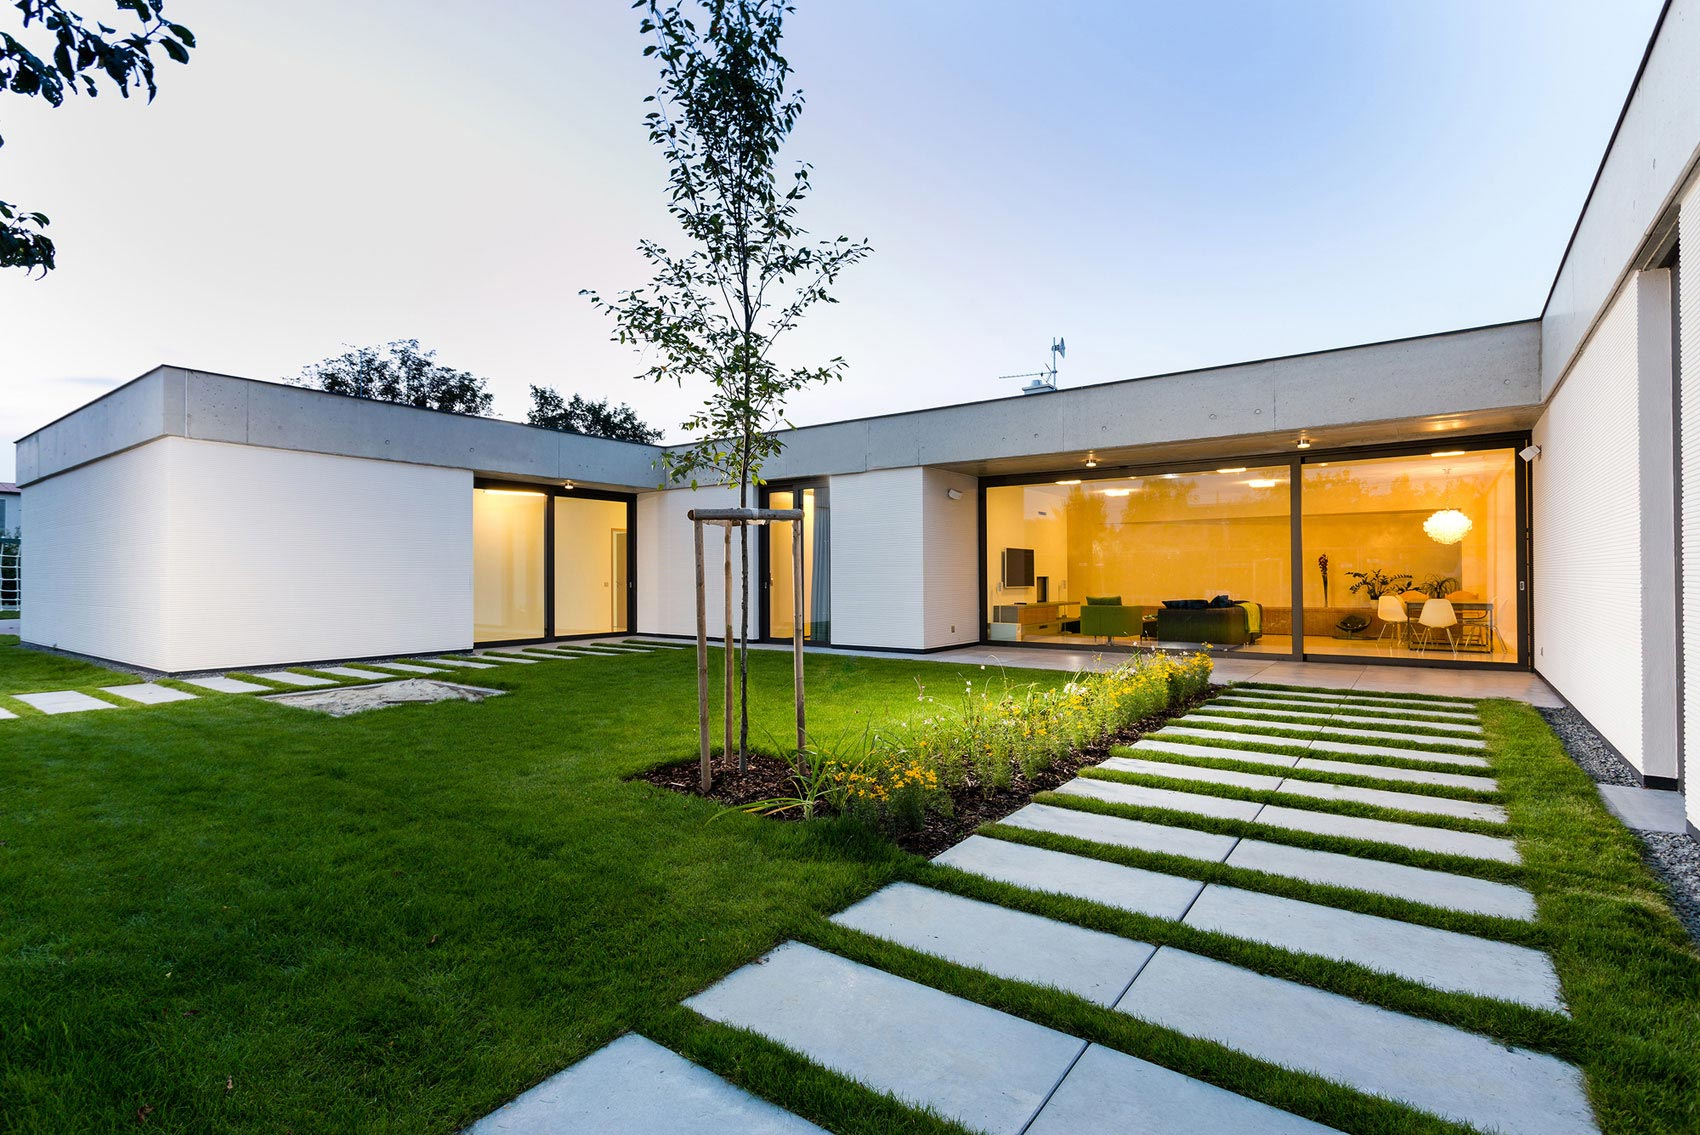 One Story Modern Home in OlomoucSlavonn by JVArchitekt KAMKAB